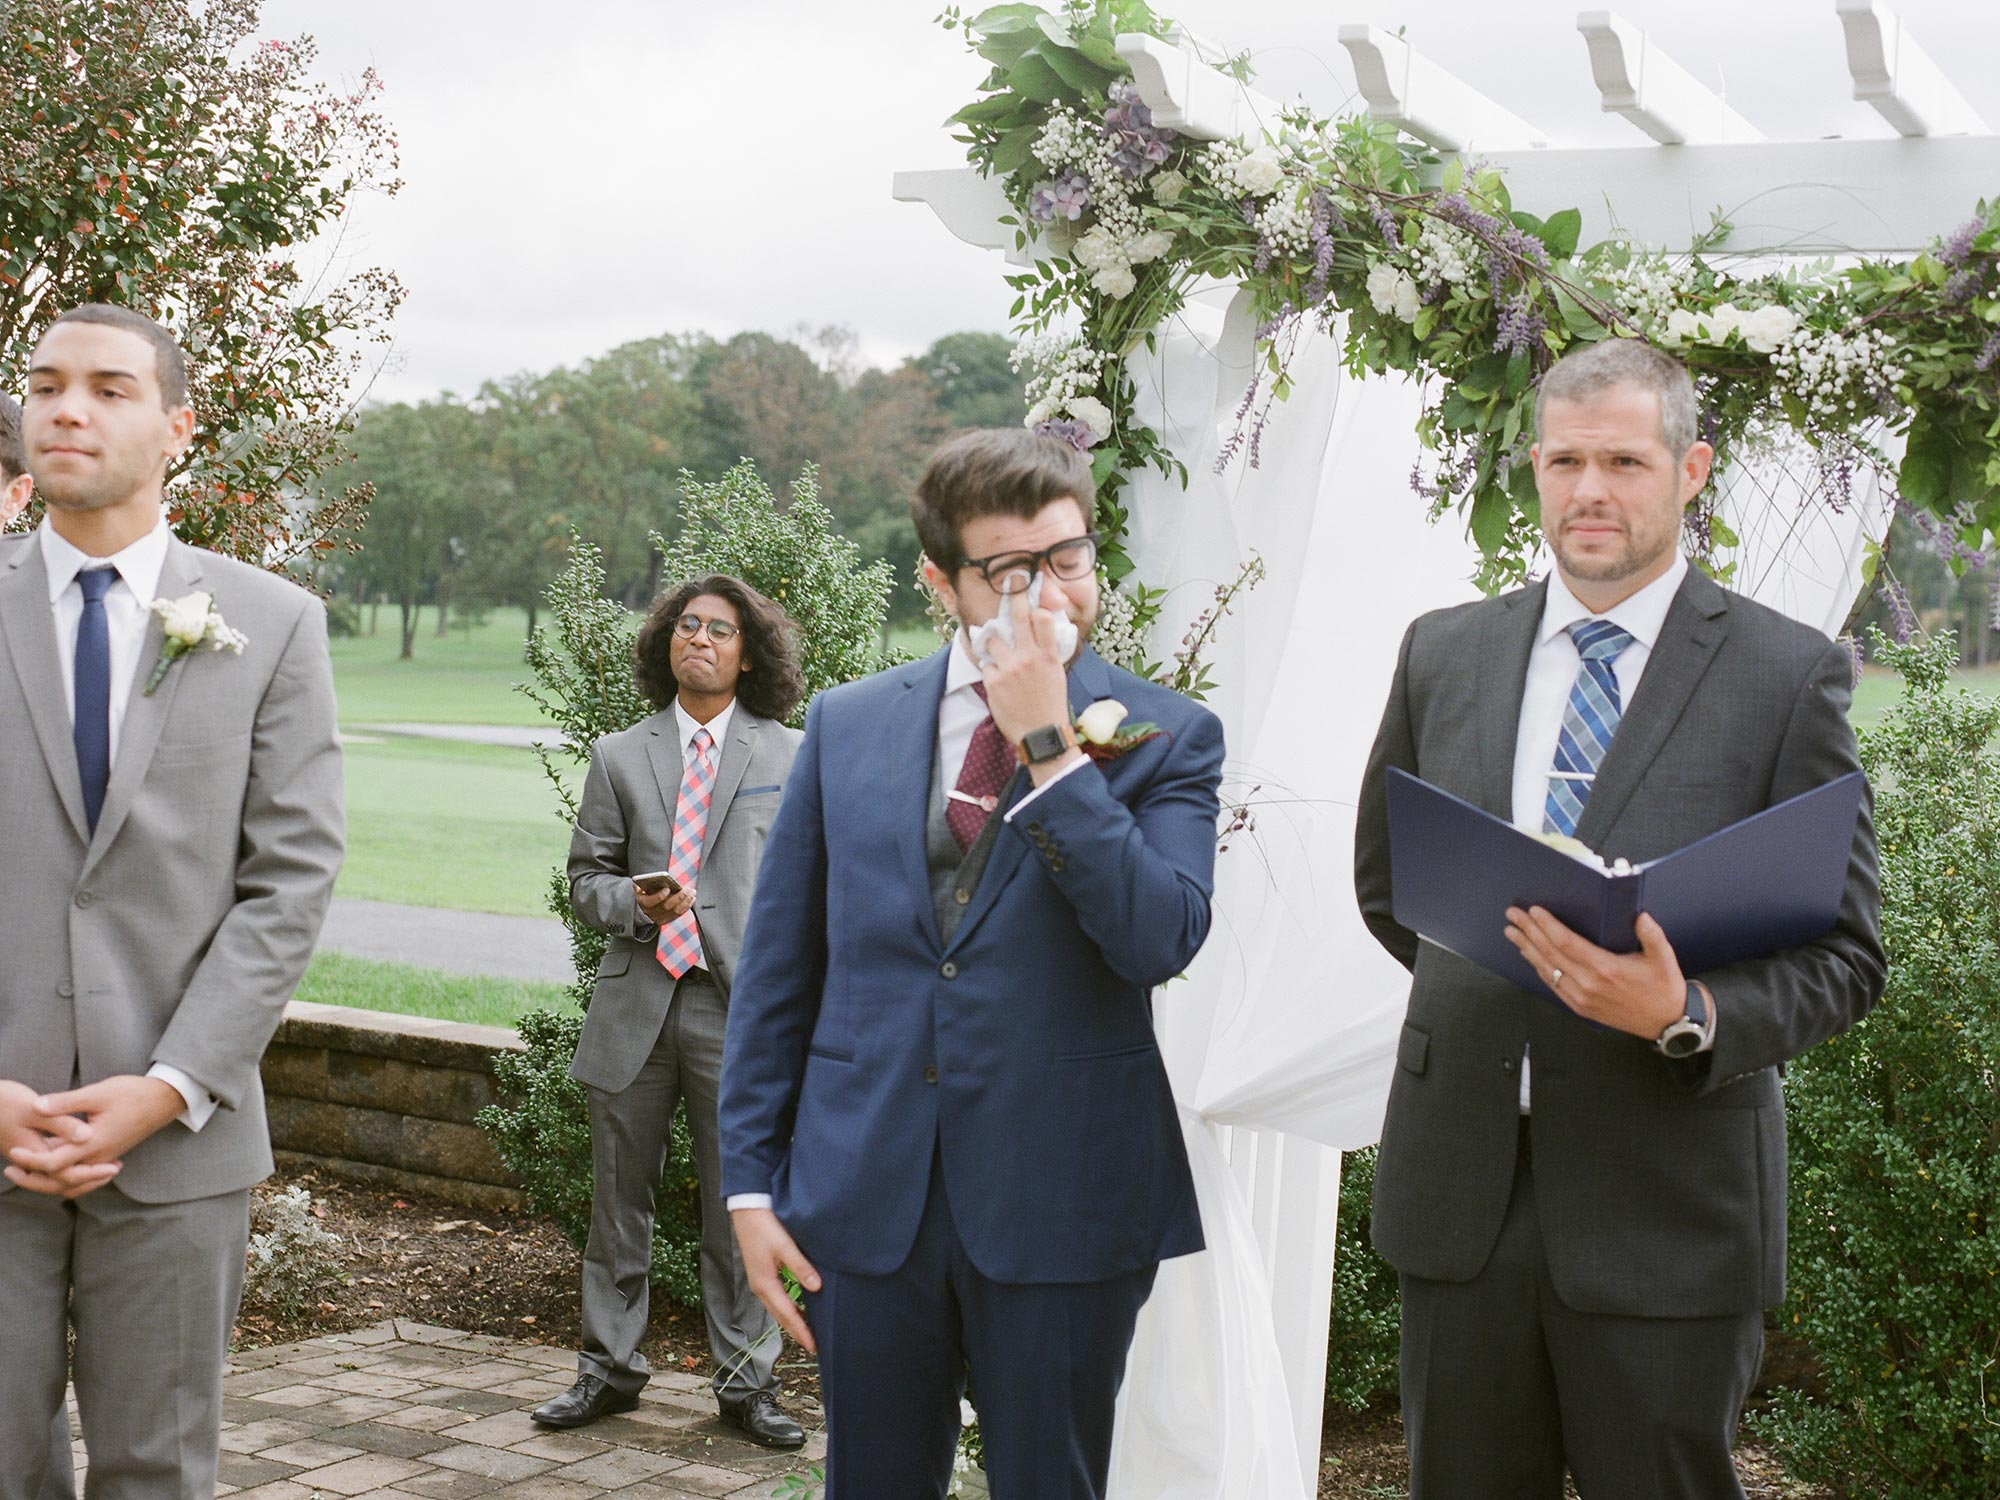 Chic Queer Wedding in West Chester Pennsylvania showing David crying as Sara walks down aisle Judson Rappaport Photography